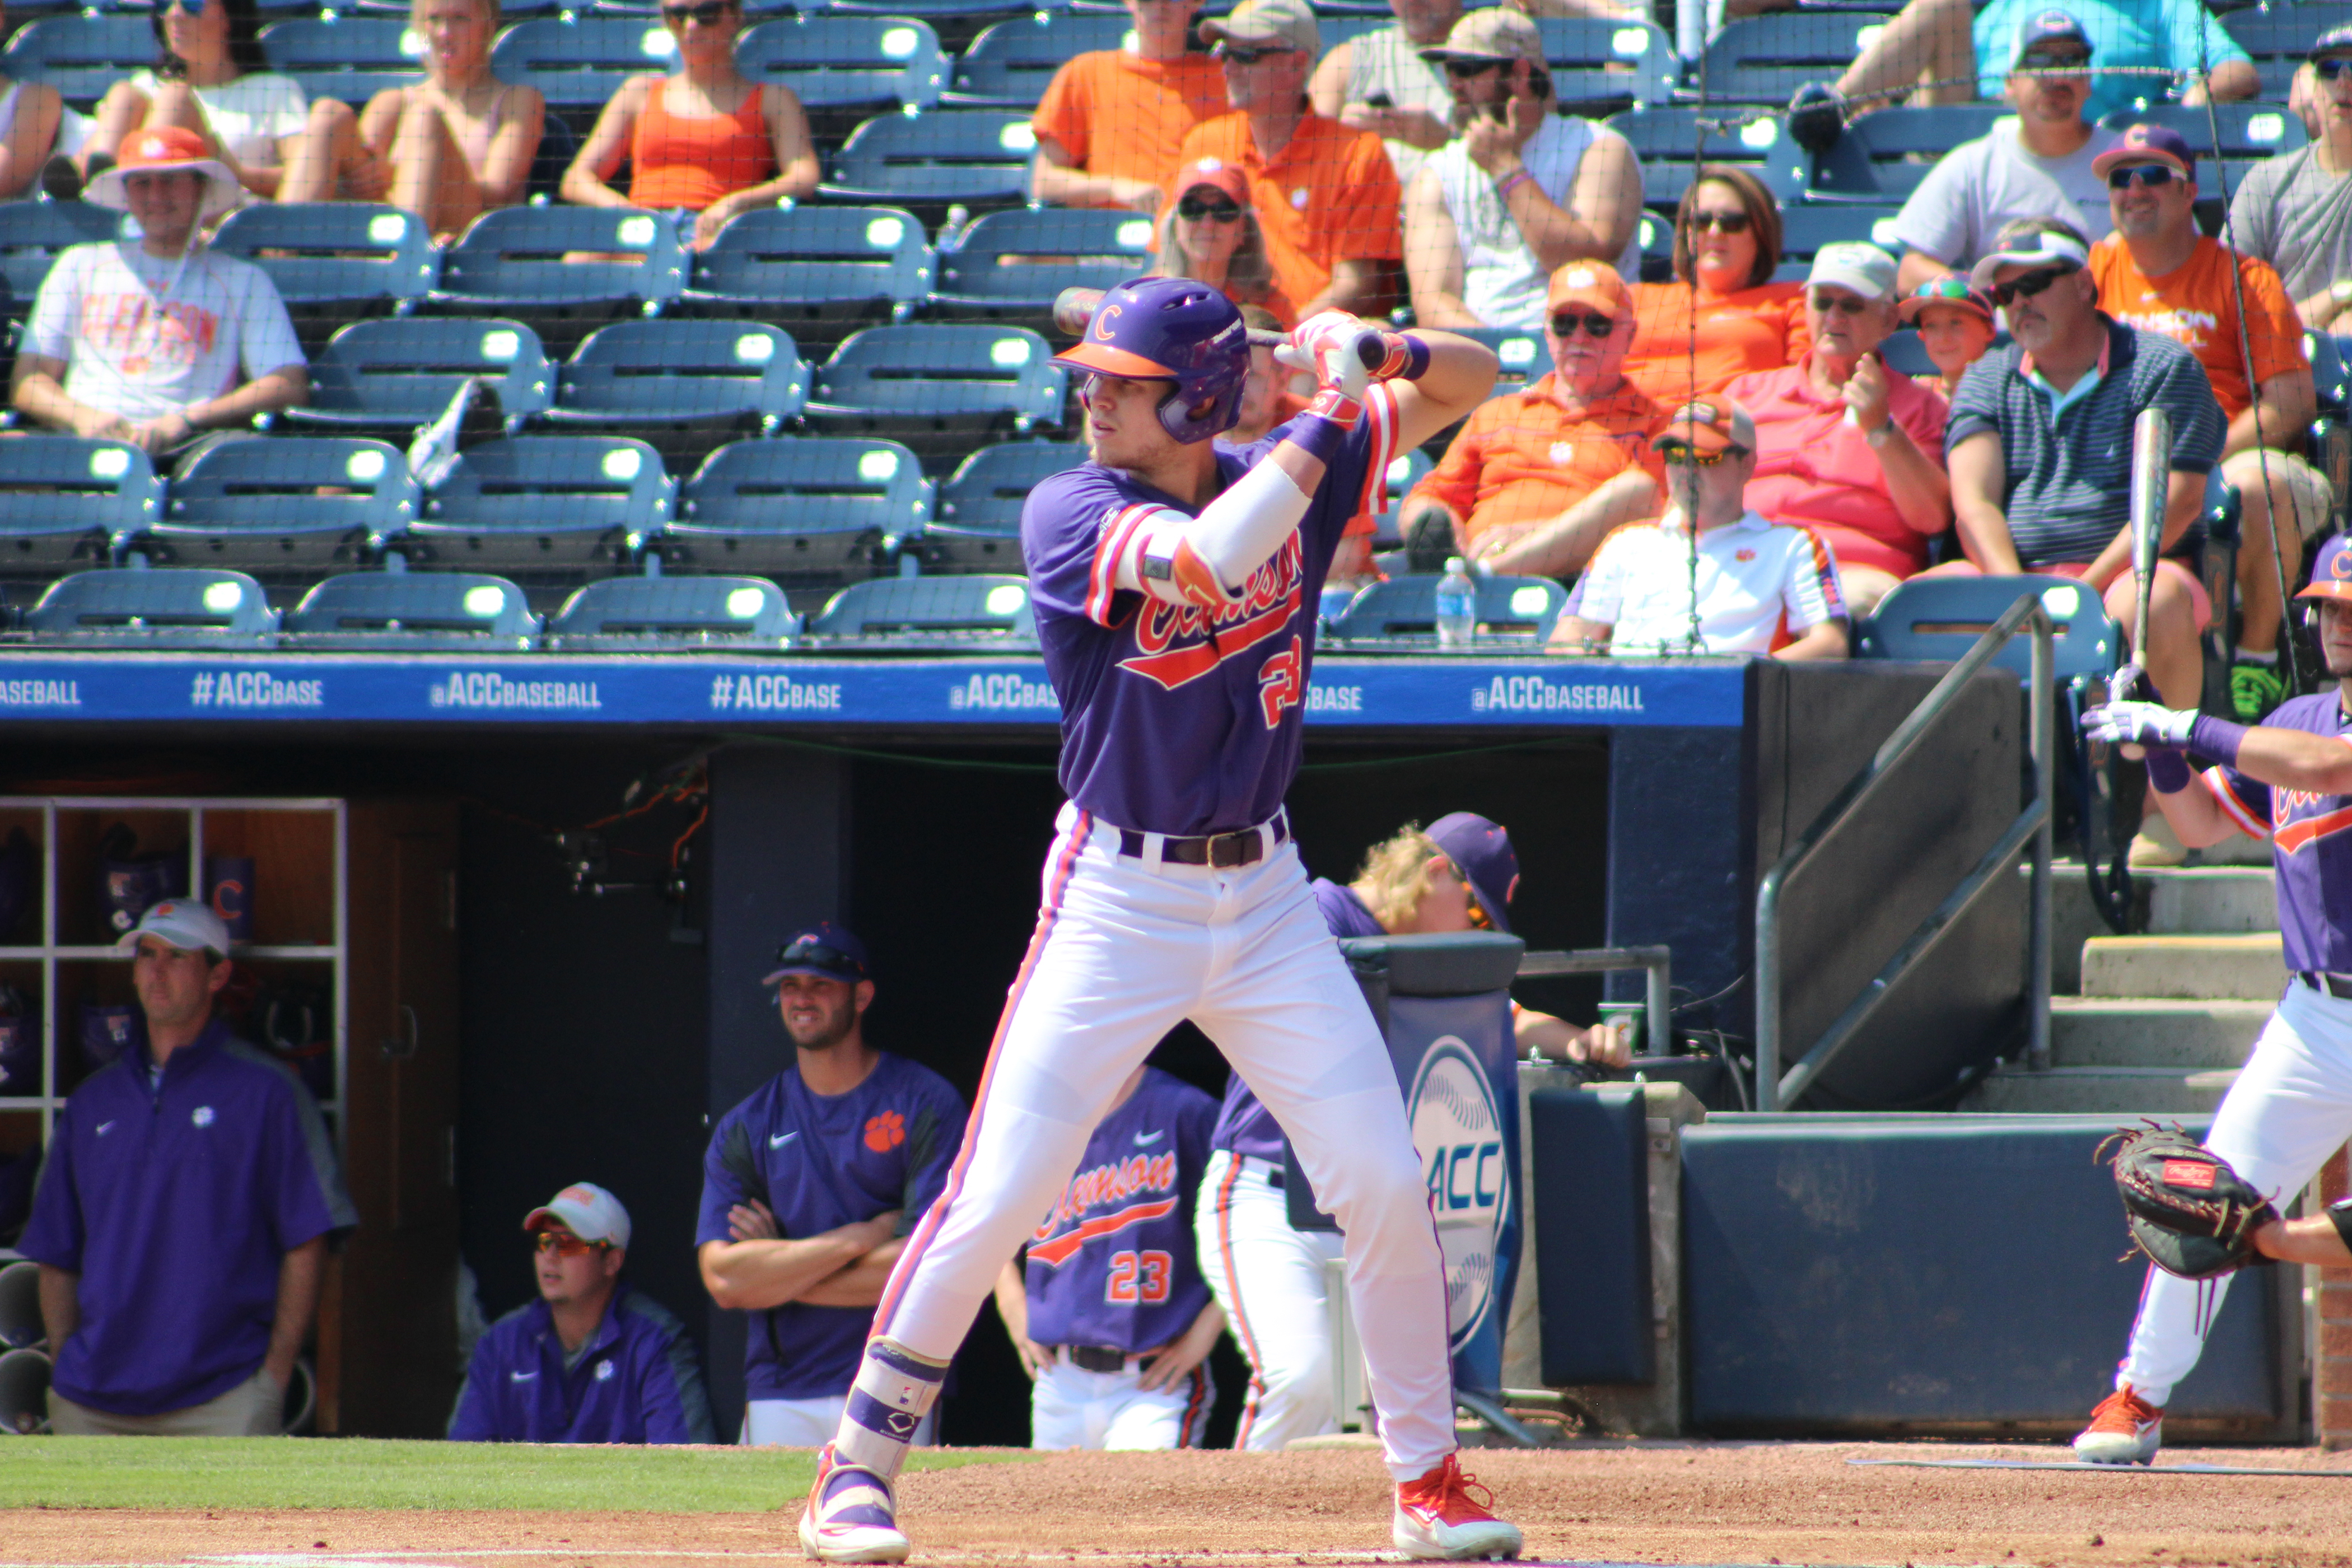 clemson s beer fsu look for big years in acc college baseball clemson s beer fsu look for big years in acc